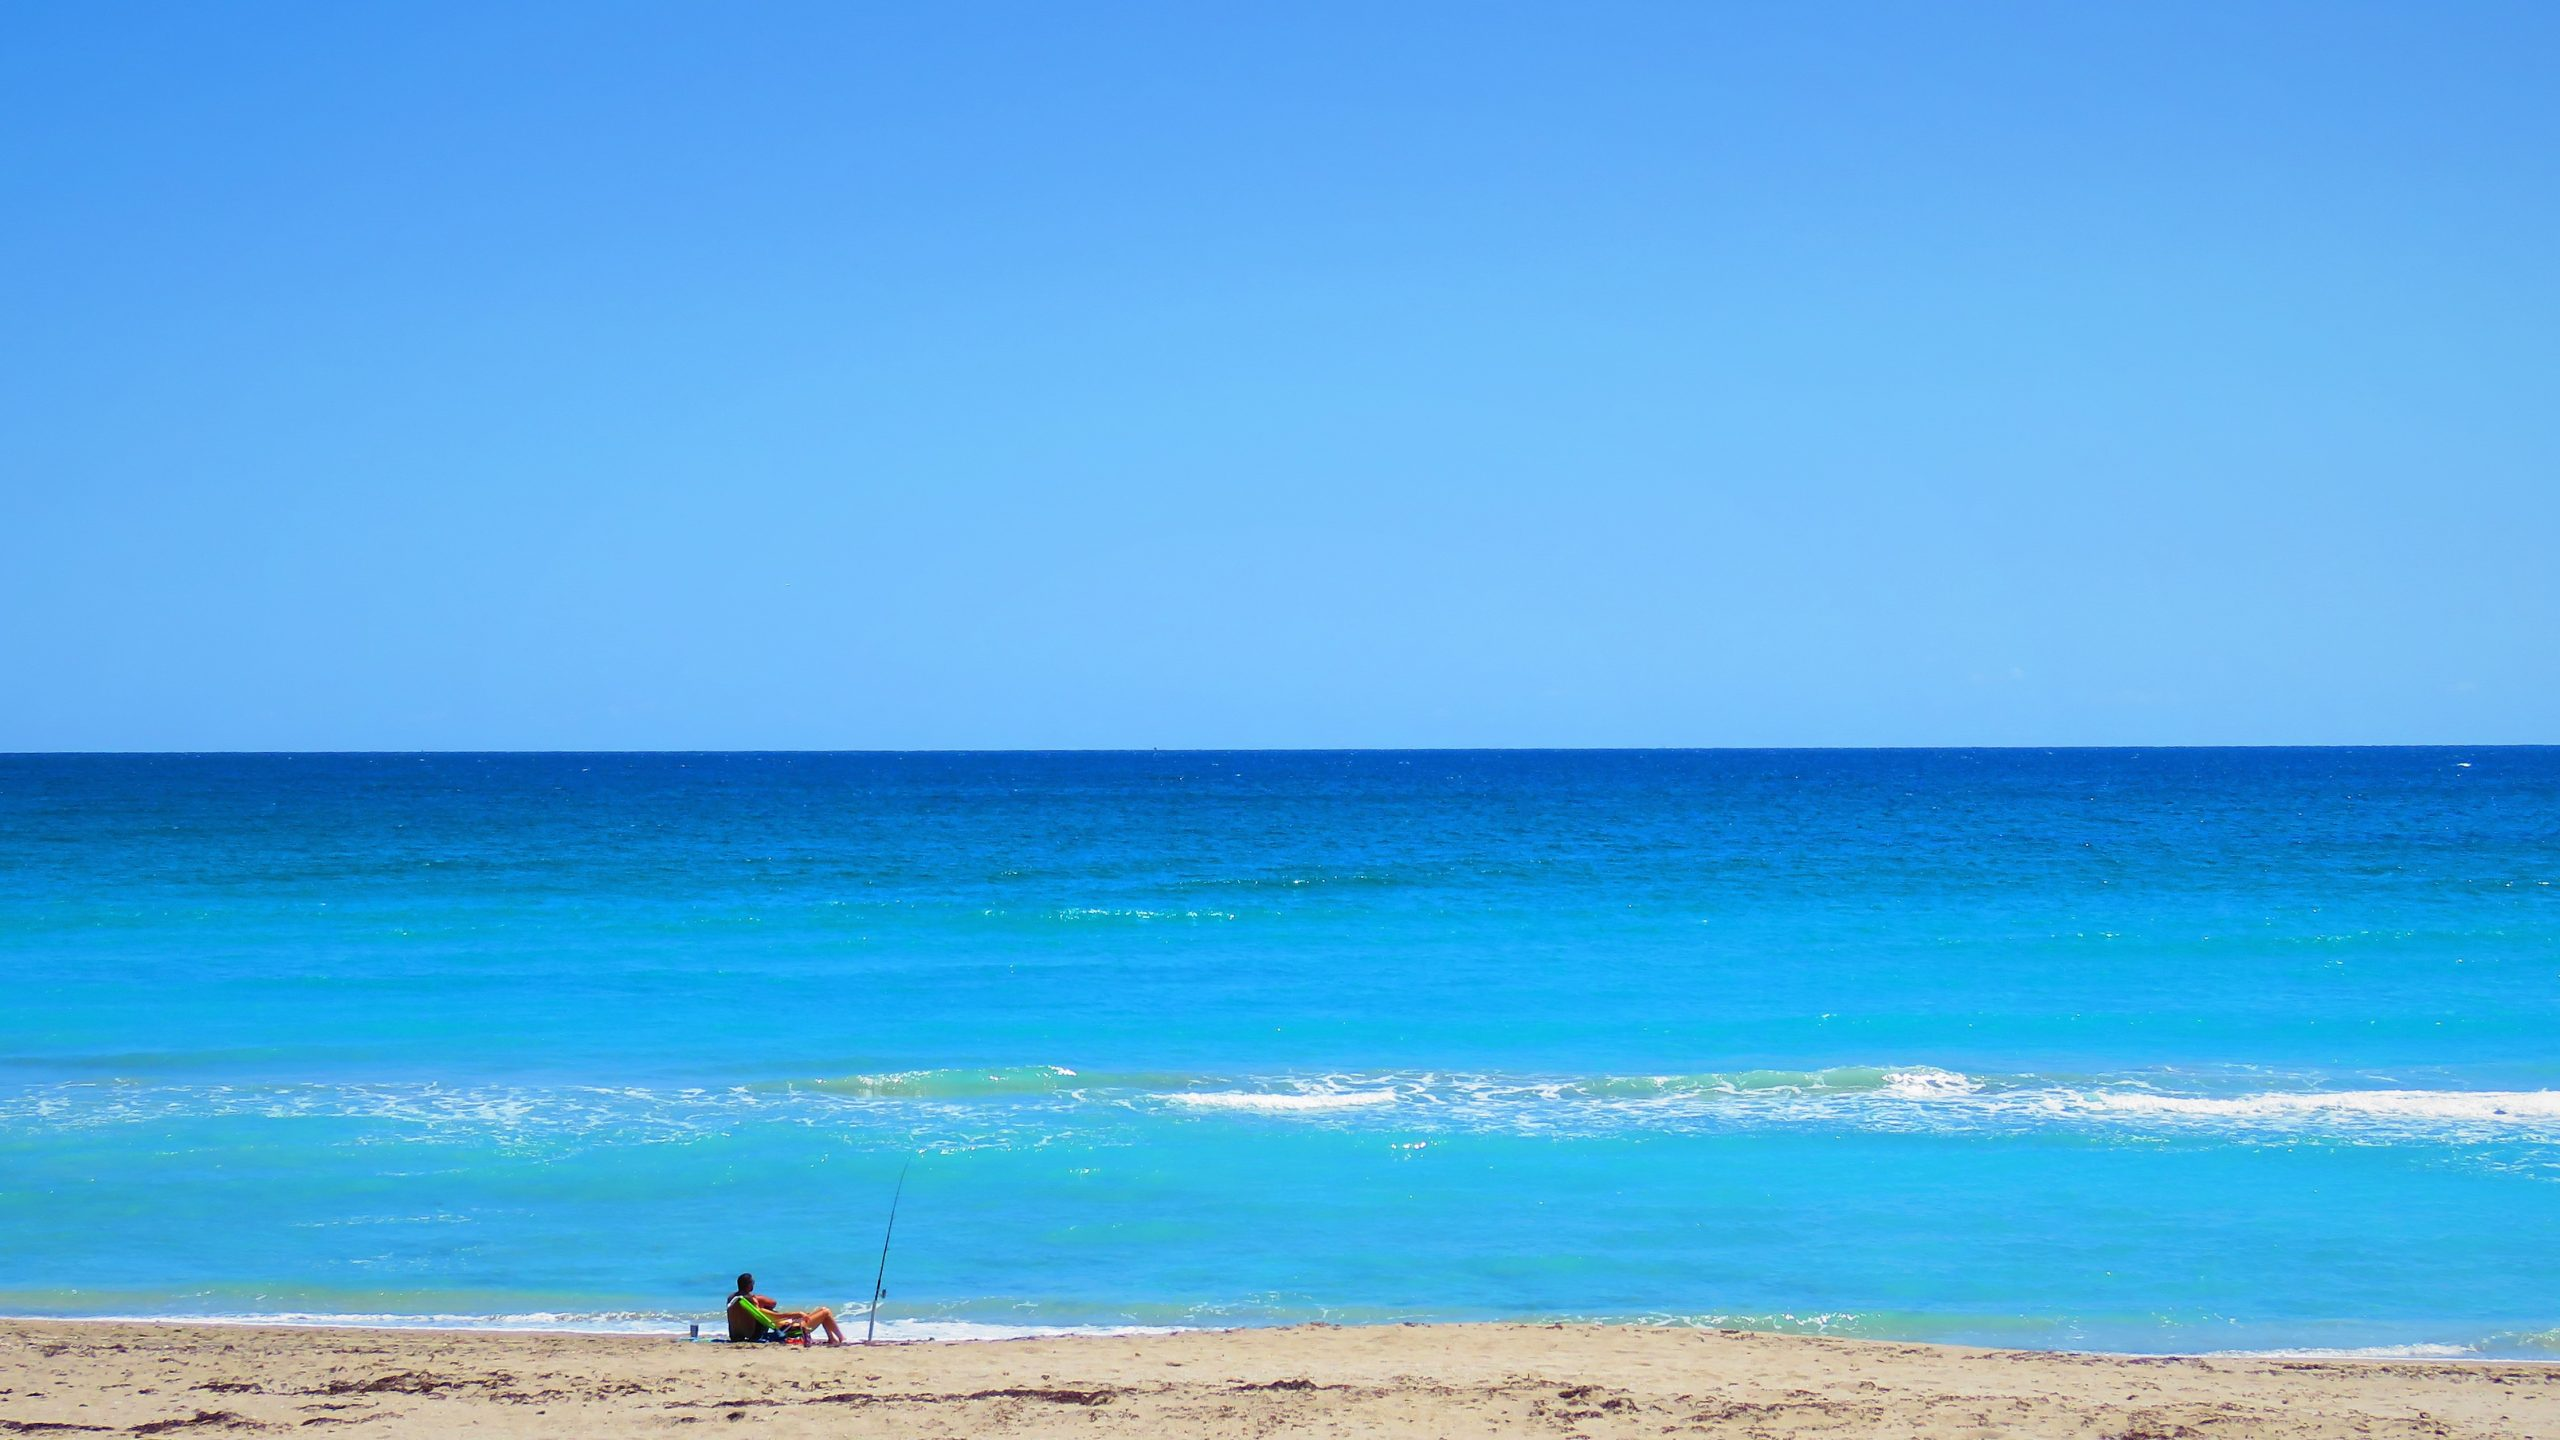 Person sitting on the beach with bright blue water